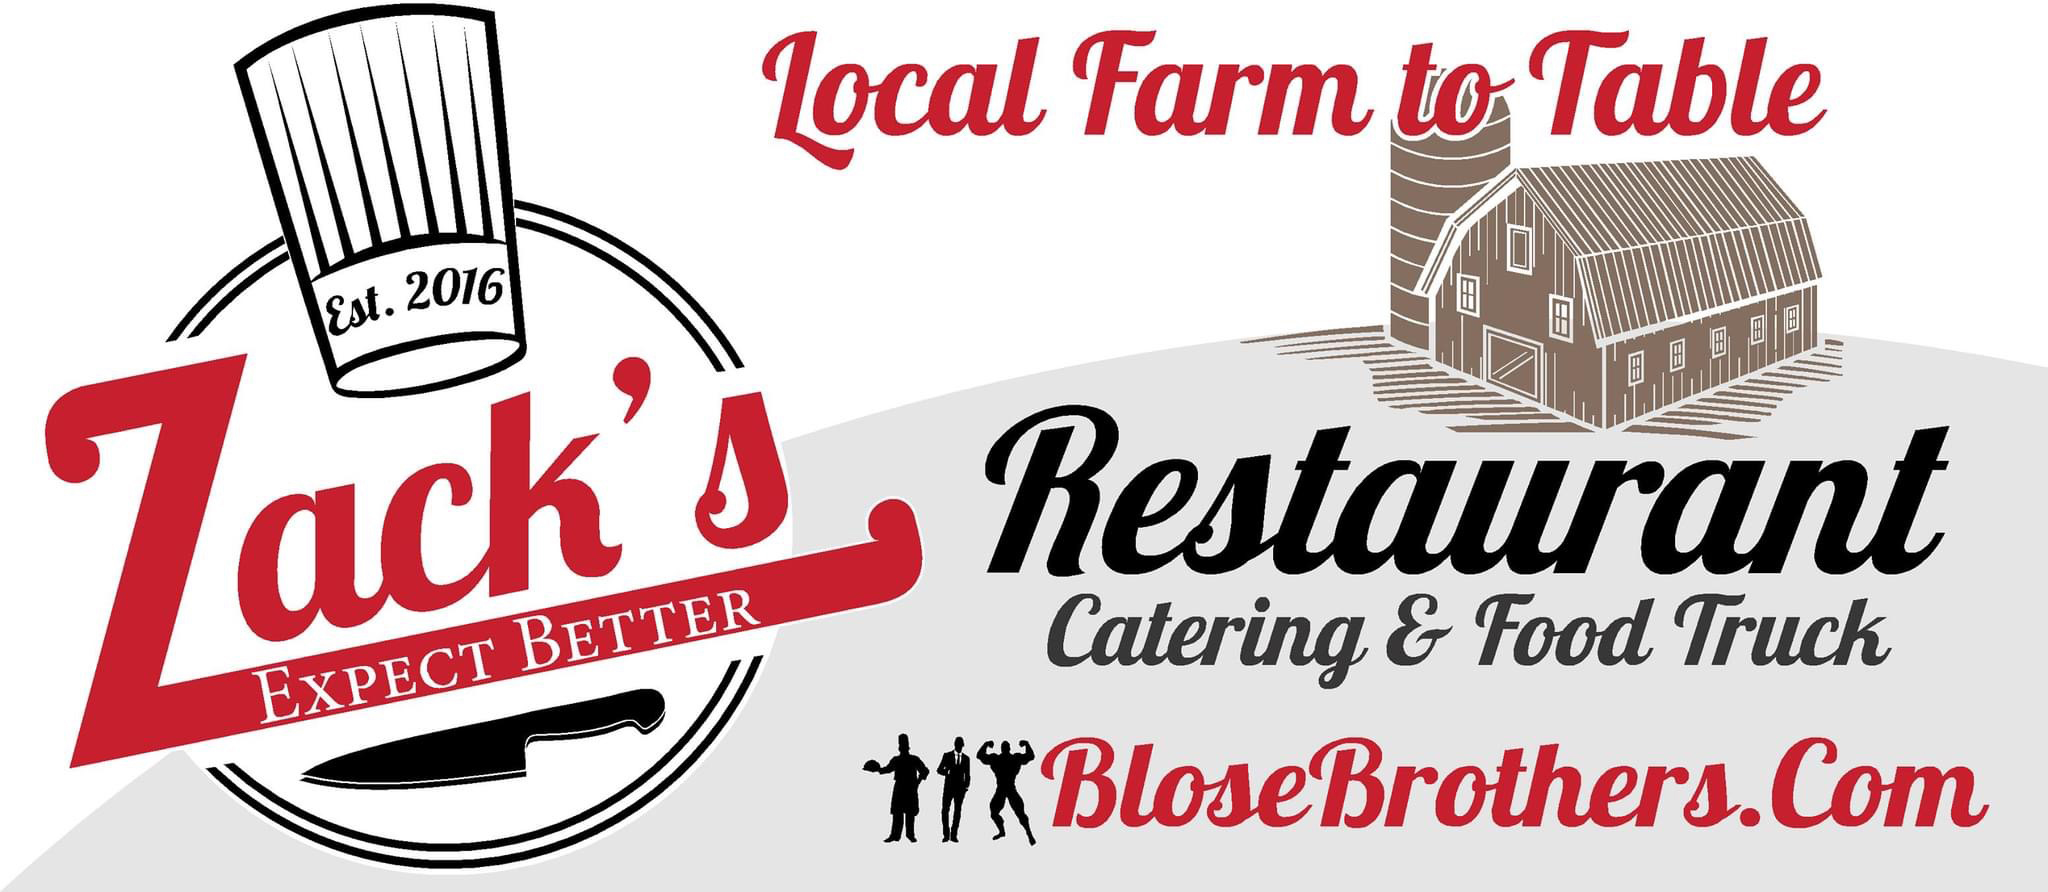 Zack's Local Farm to Table Restaurant & Catering